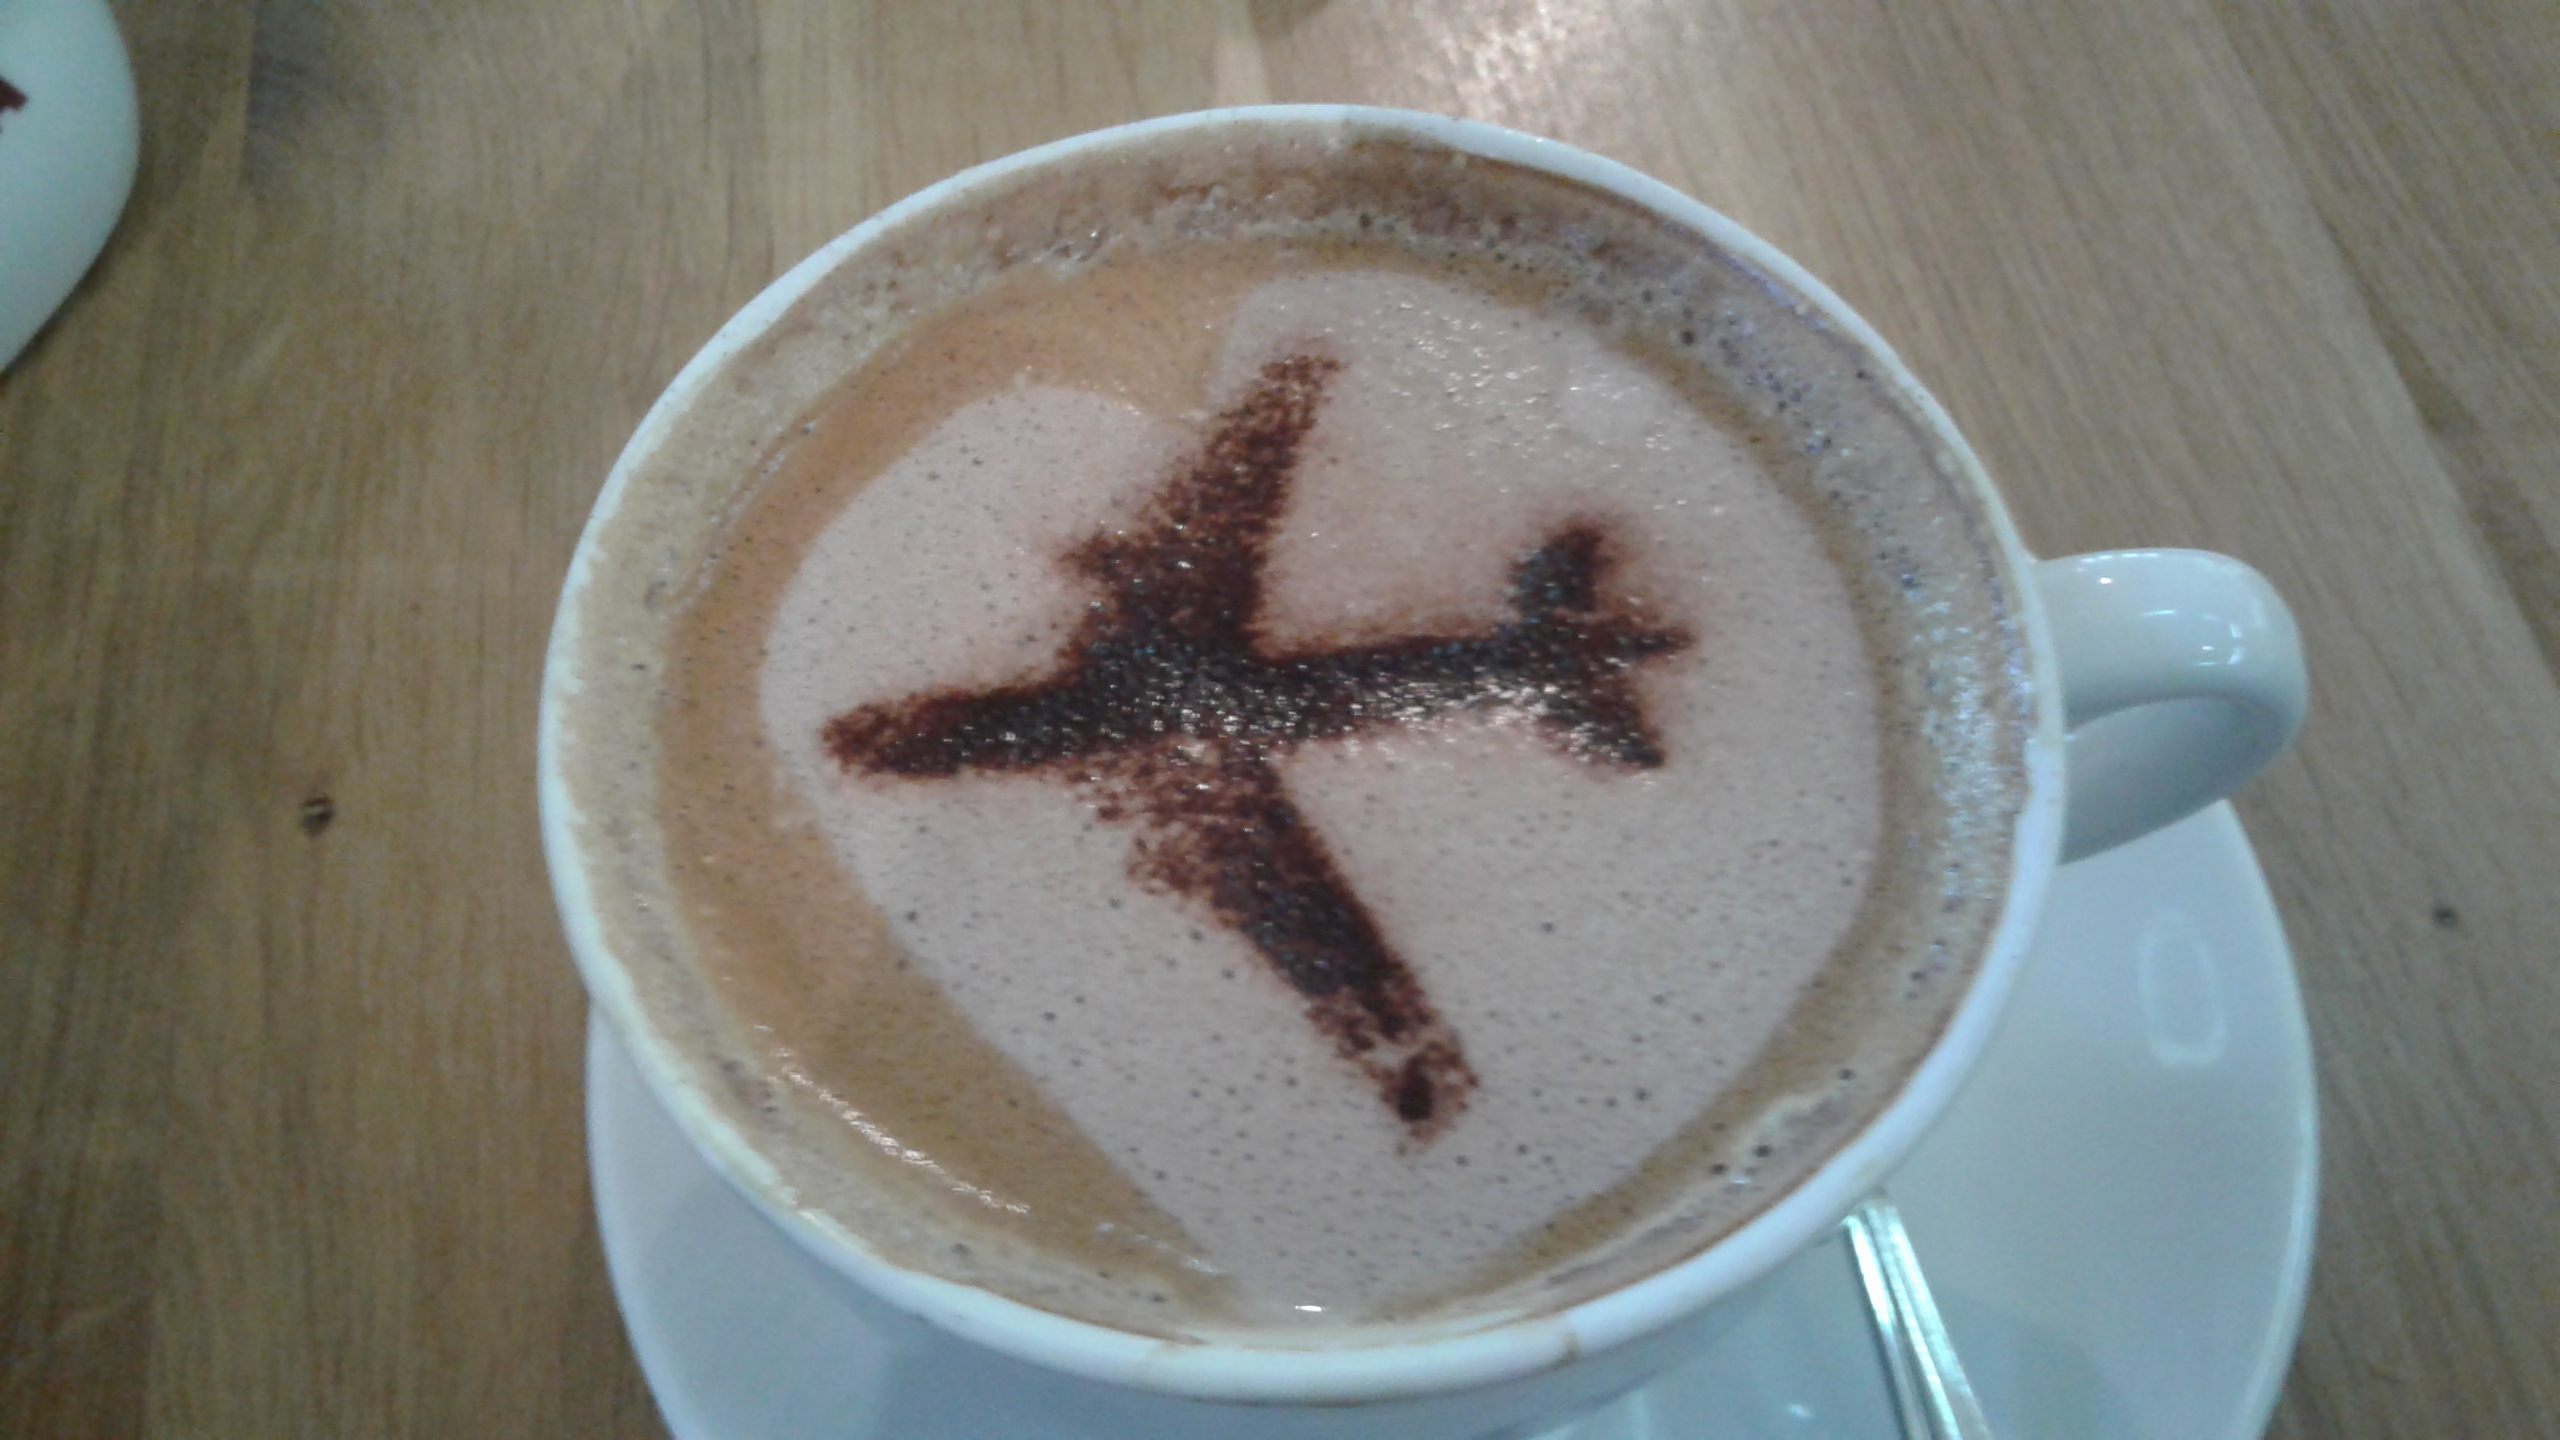 Coffee decorated with cocoa powder in the shape of an airplane